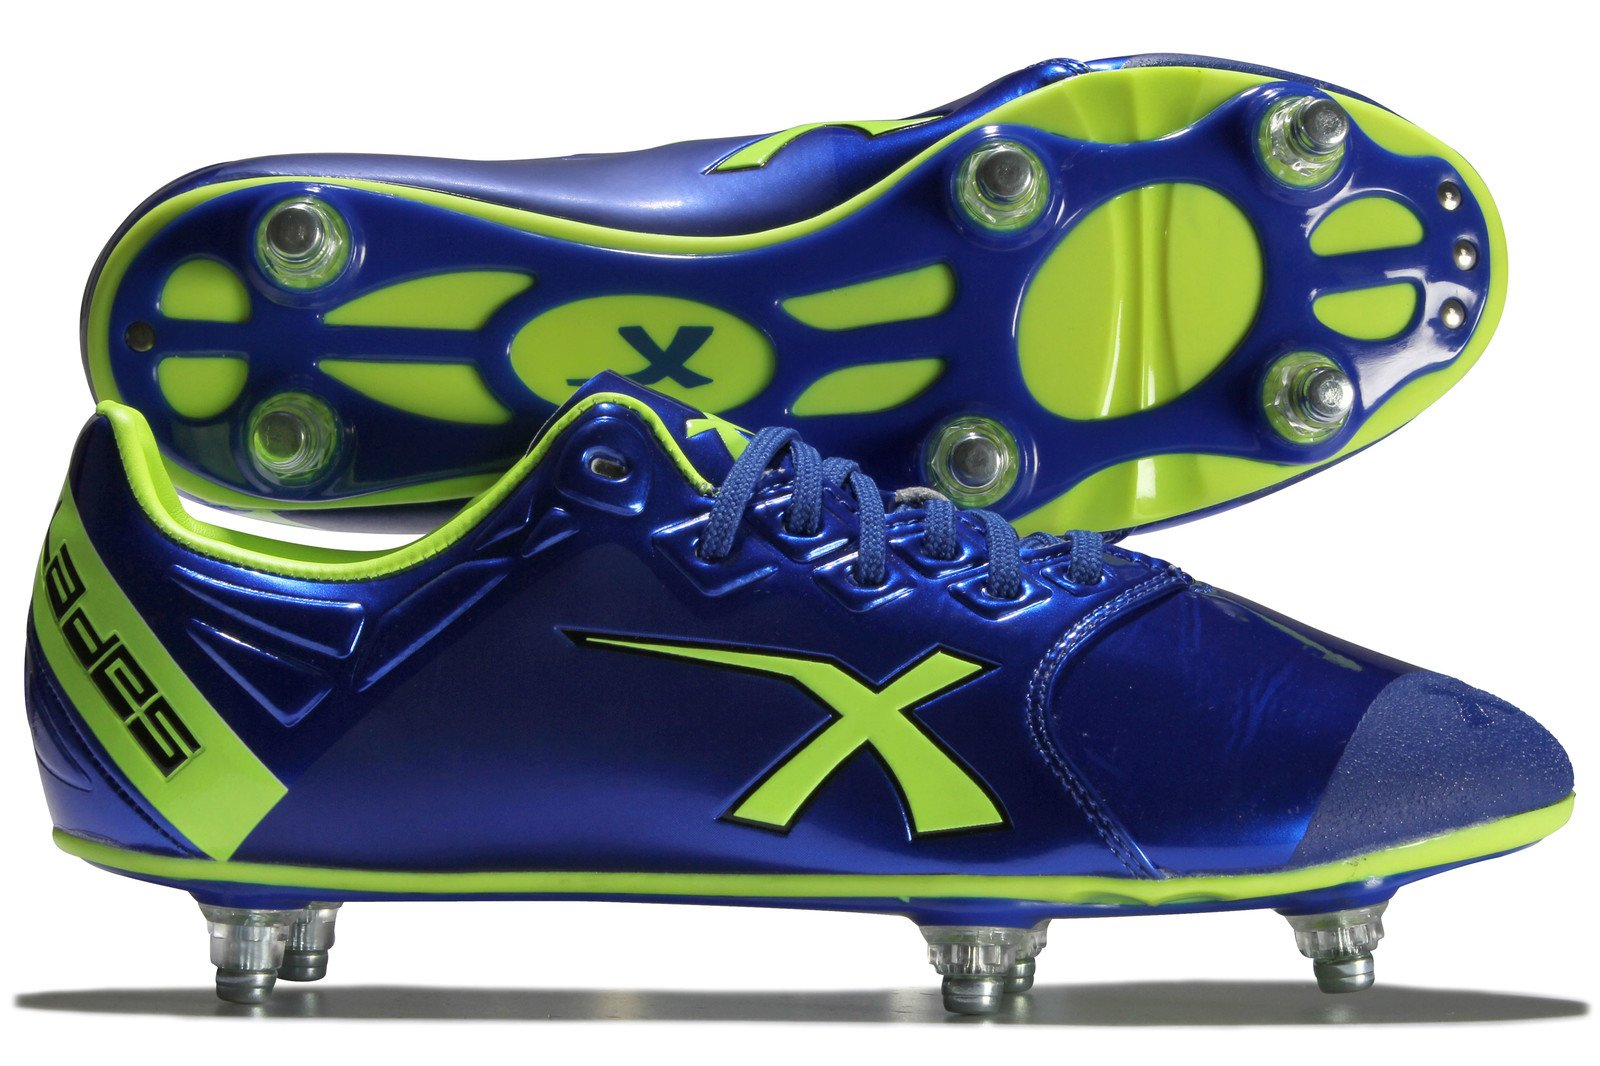 X Blades Sniper Speed 6 Stud Rugby Boot, Blue/Green, US10